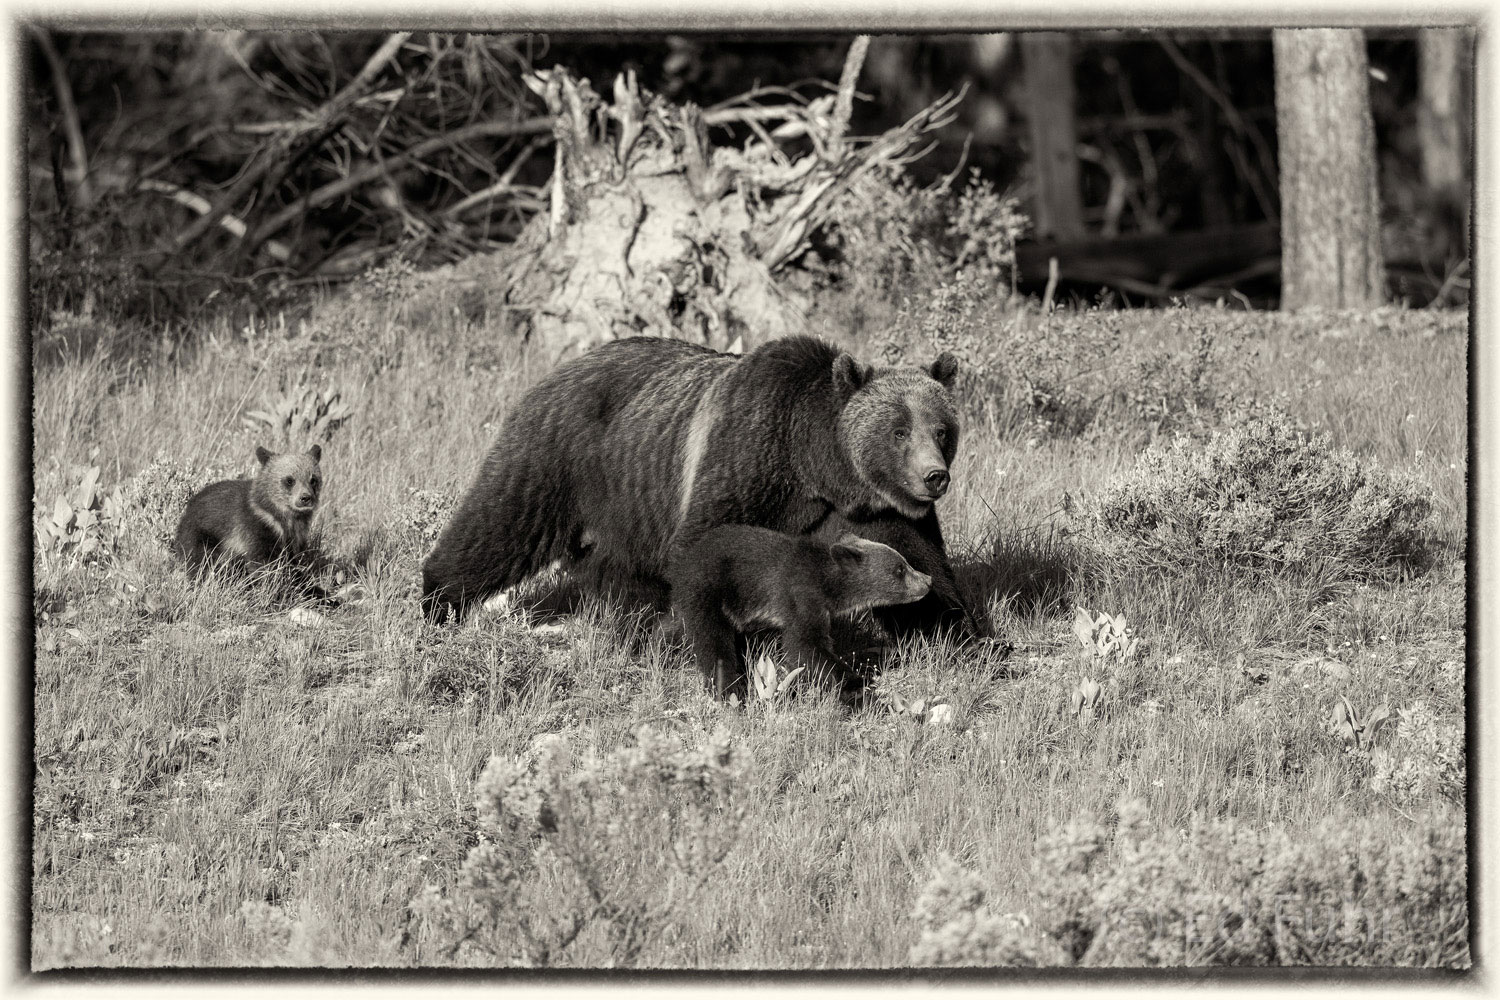 The grizzly bear is perhaps the greatest symbol of our wild west and for the time being has found new protection against hunting...